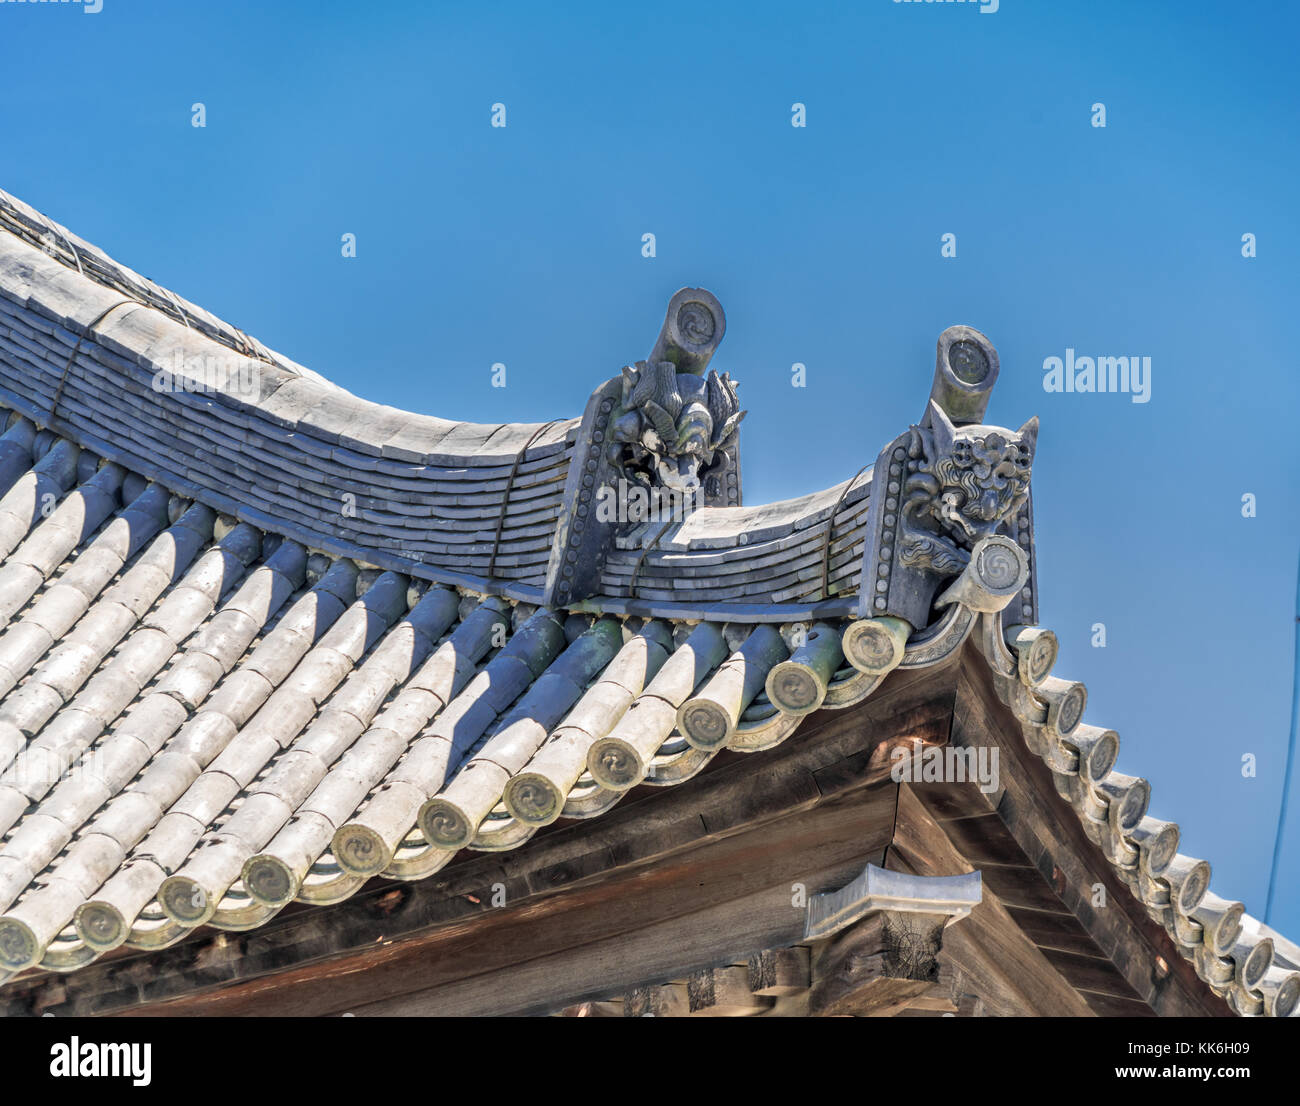 Onigawara (ogre-face tile), Toribusuma and Sumigawara roof details of Tokondo Hall at Kofuku-ji temple. Located - Stock Image